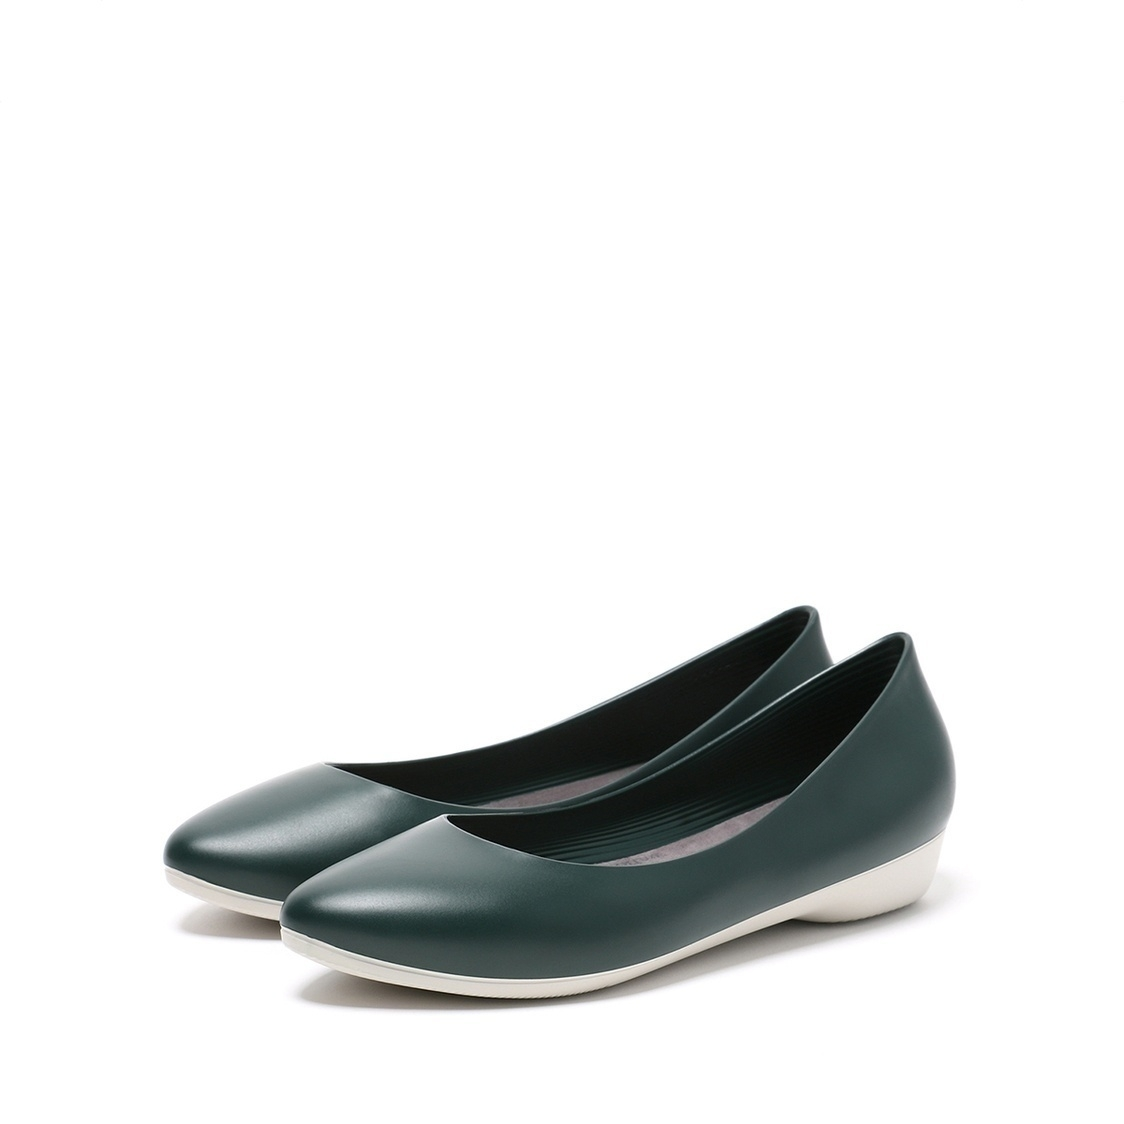 F3 Flat-Pointed Heel height 3cm Pine Green